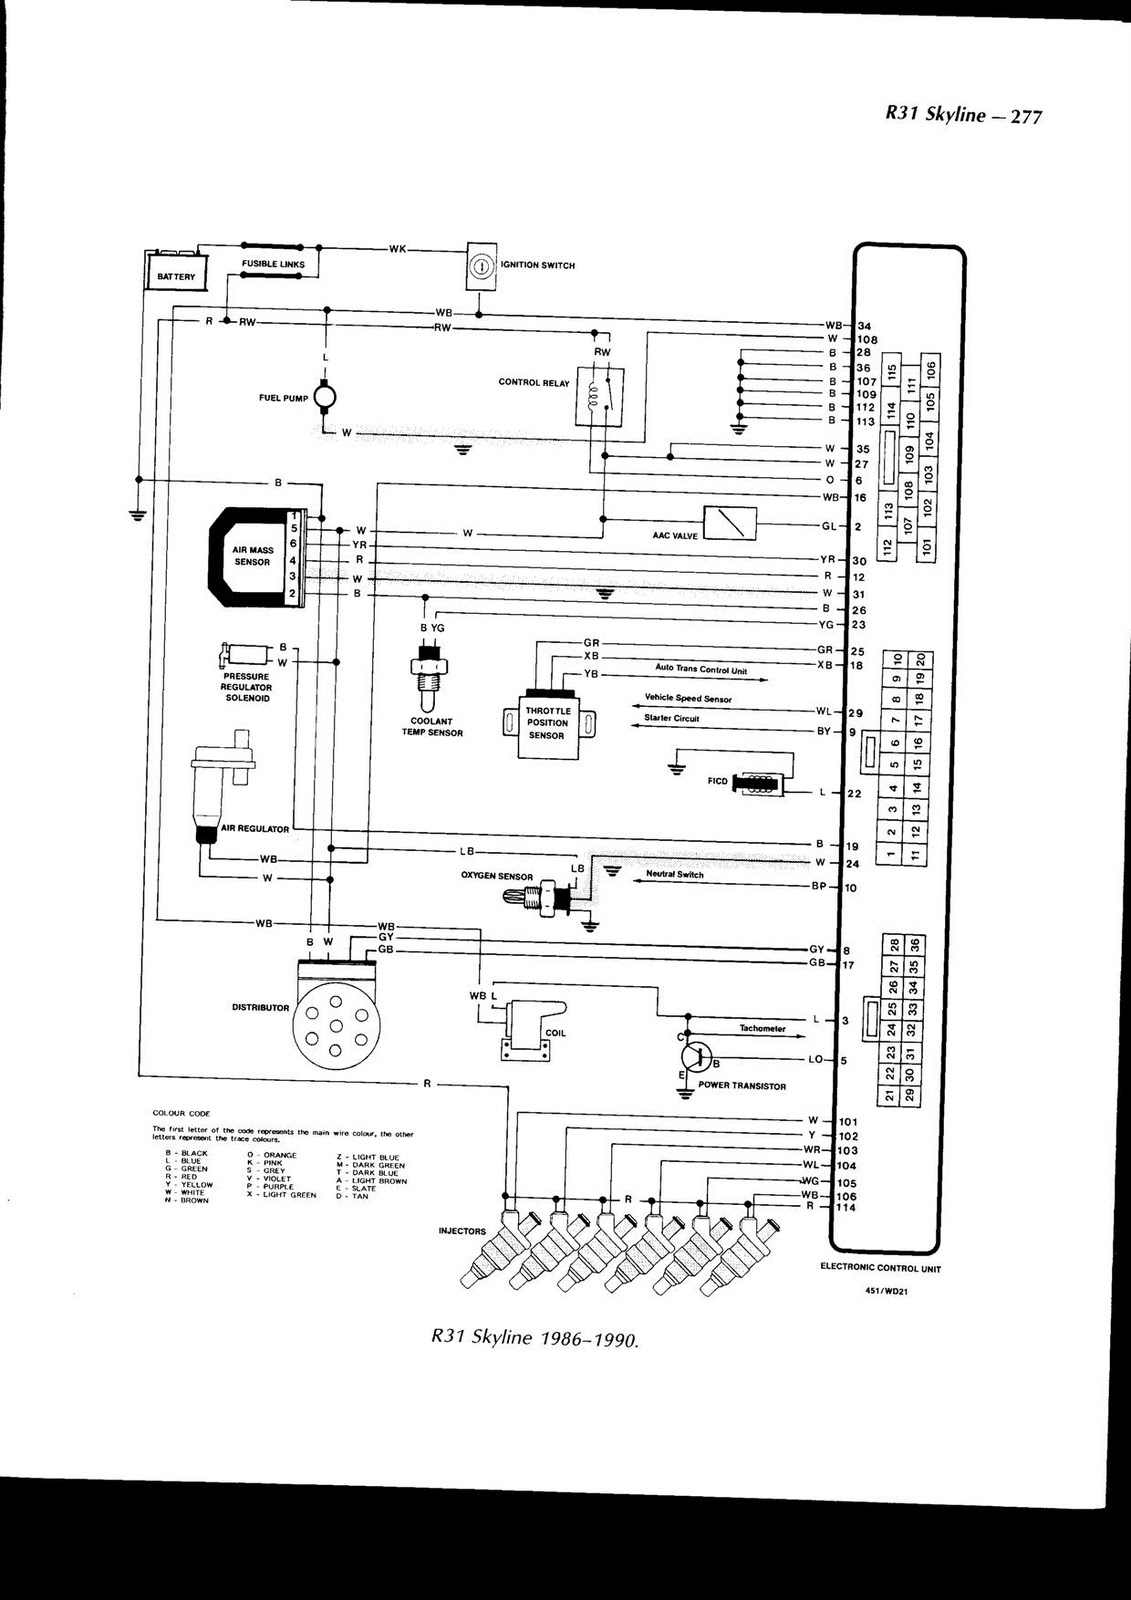 rb30 wiring diagrams wiring diagrams u2022 rh autonomia co HVAC Wiring Diagrams Basic Electrical Wiring Diagrams